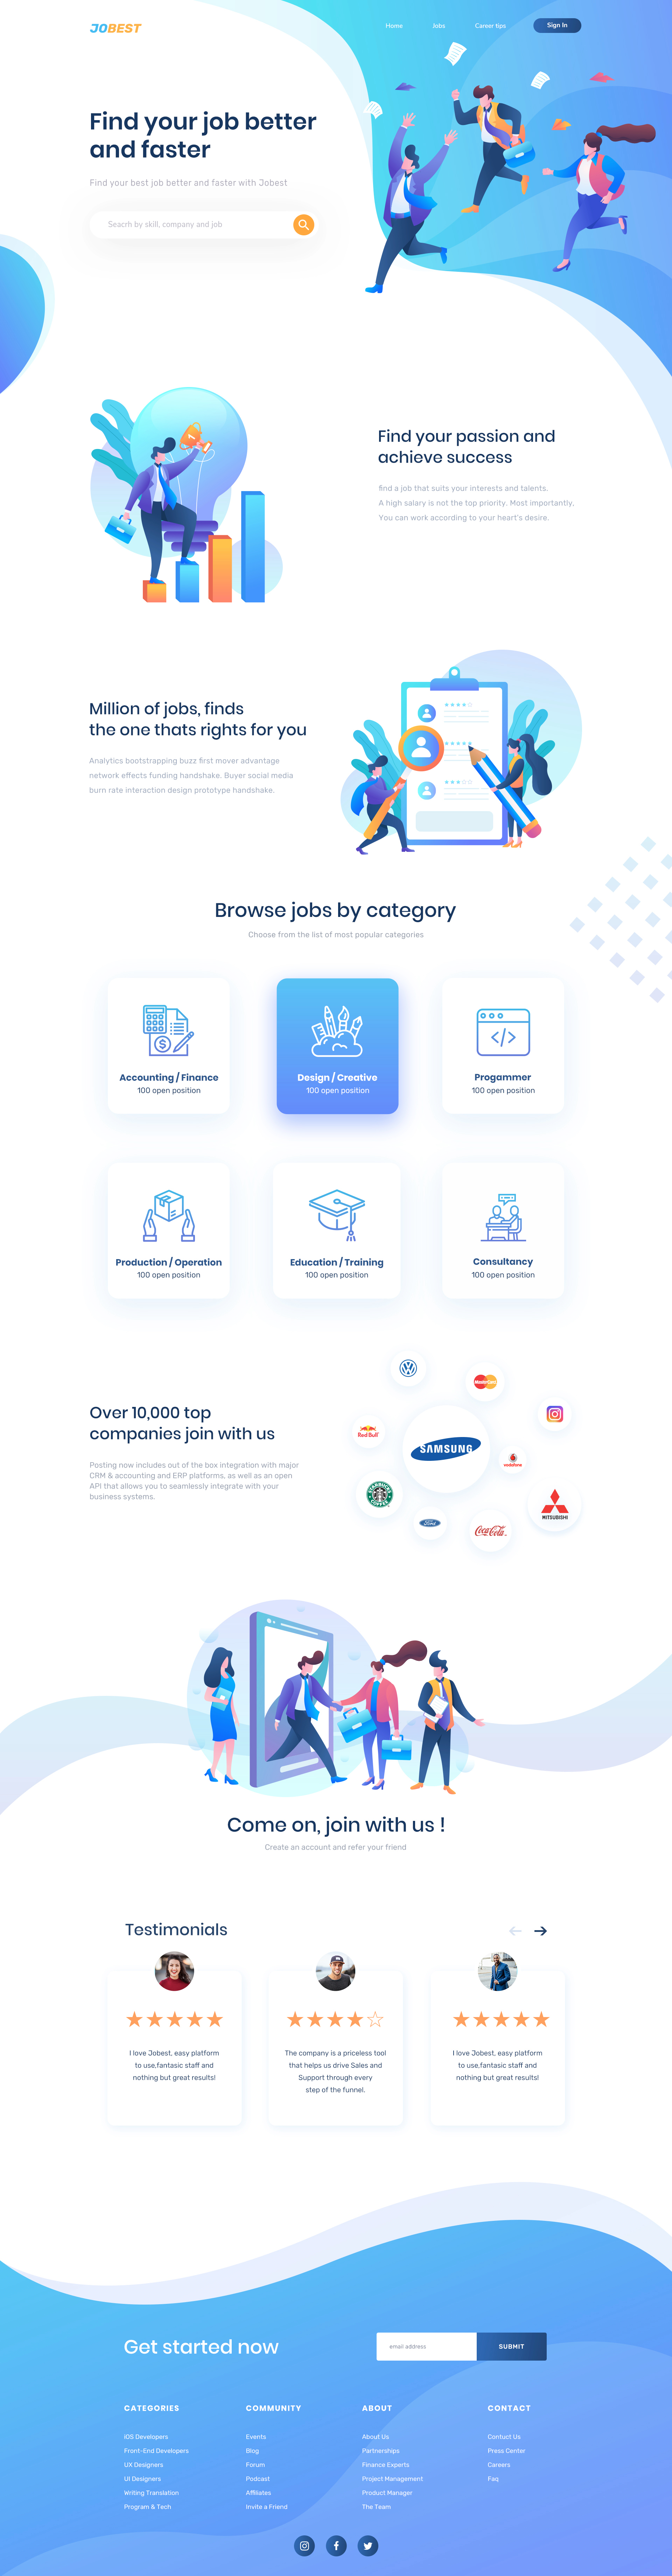 Jobest - Job Portal Landing Page - A job vacancy portal homepage design with amazing illustrations. Designed by Dwipo Prawiro.